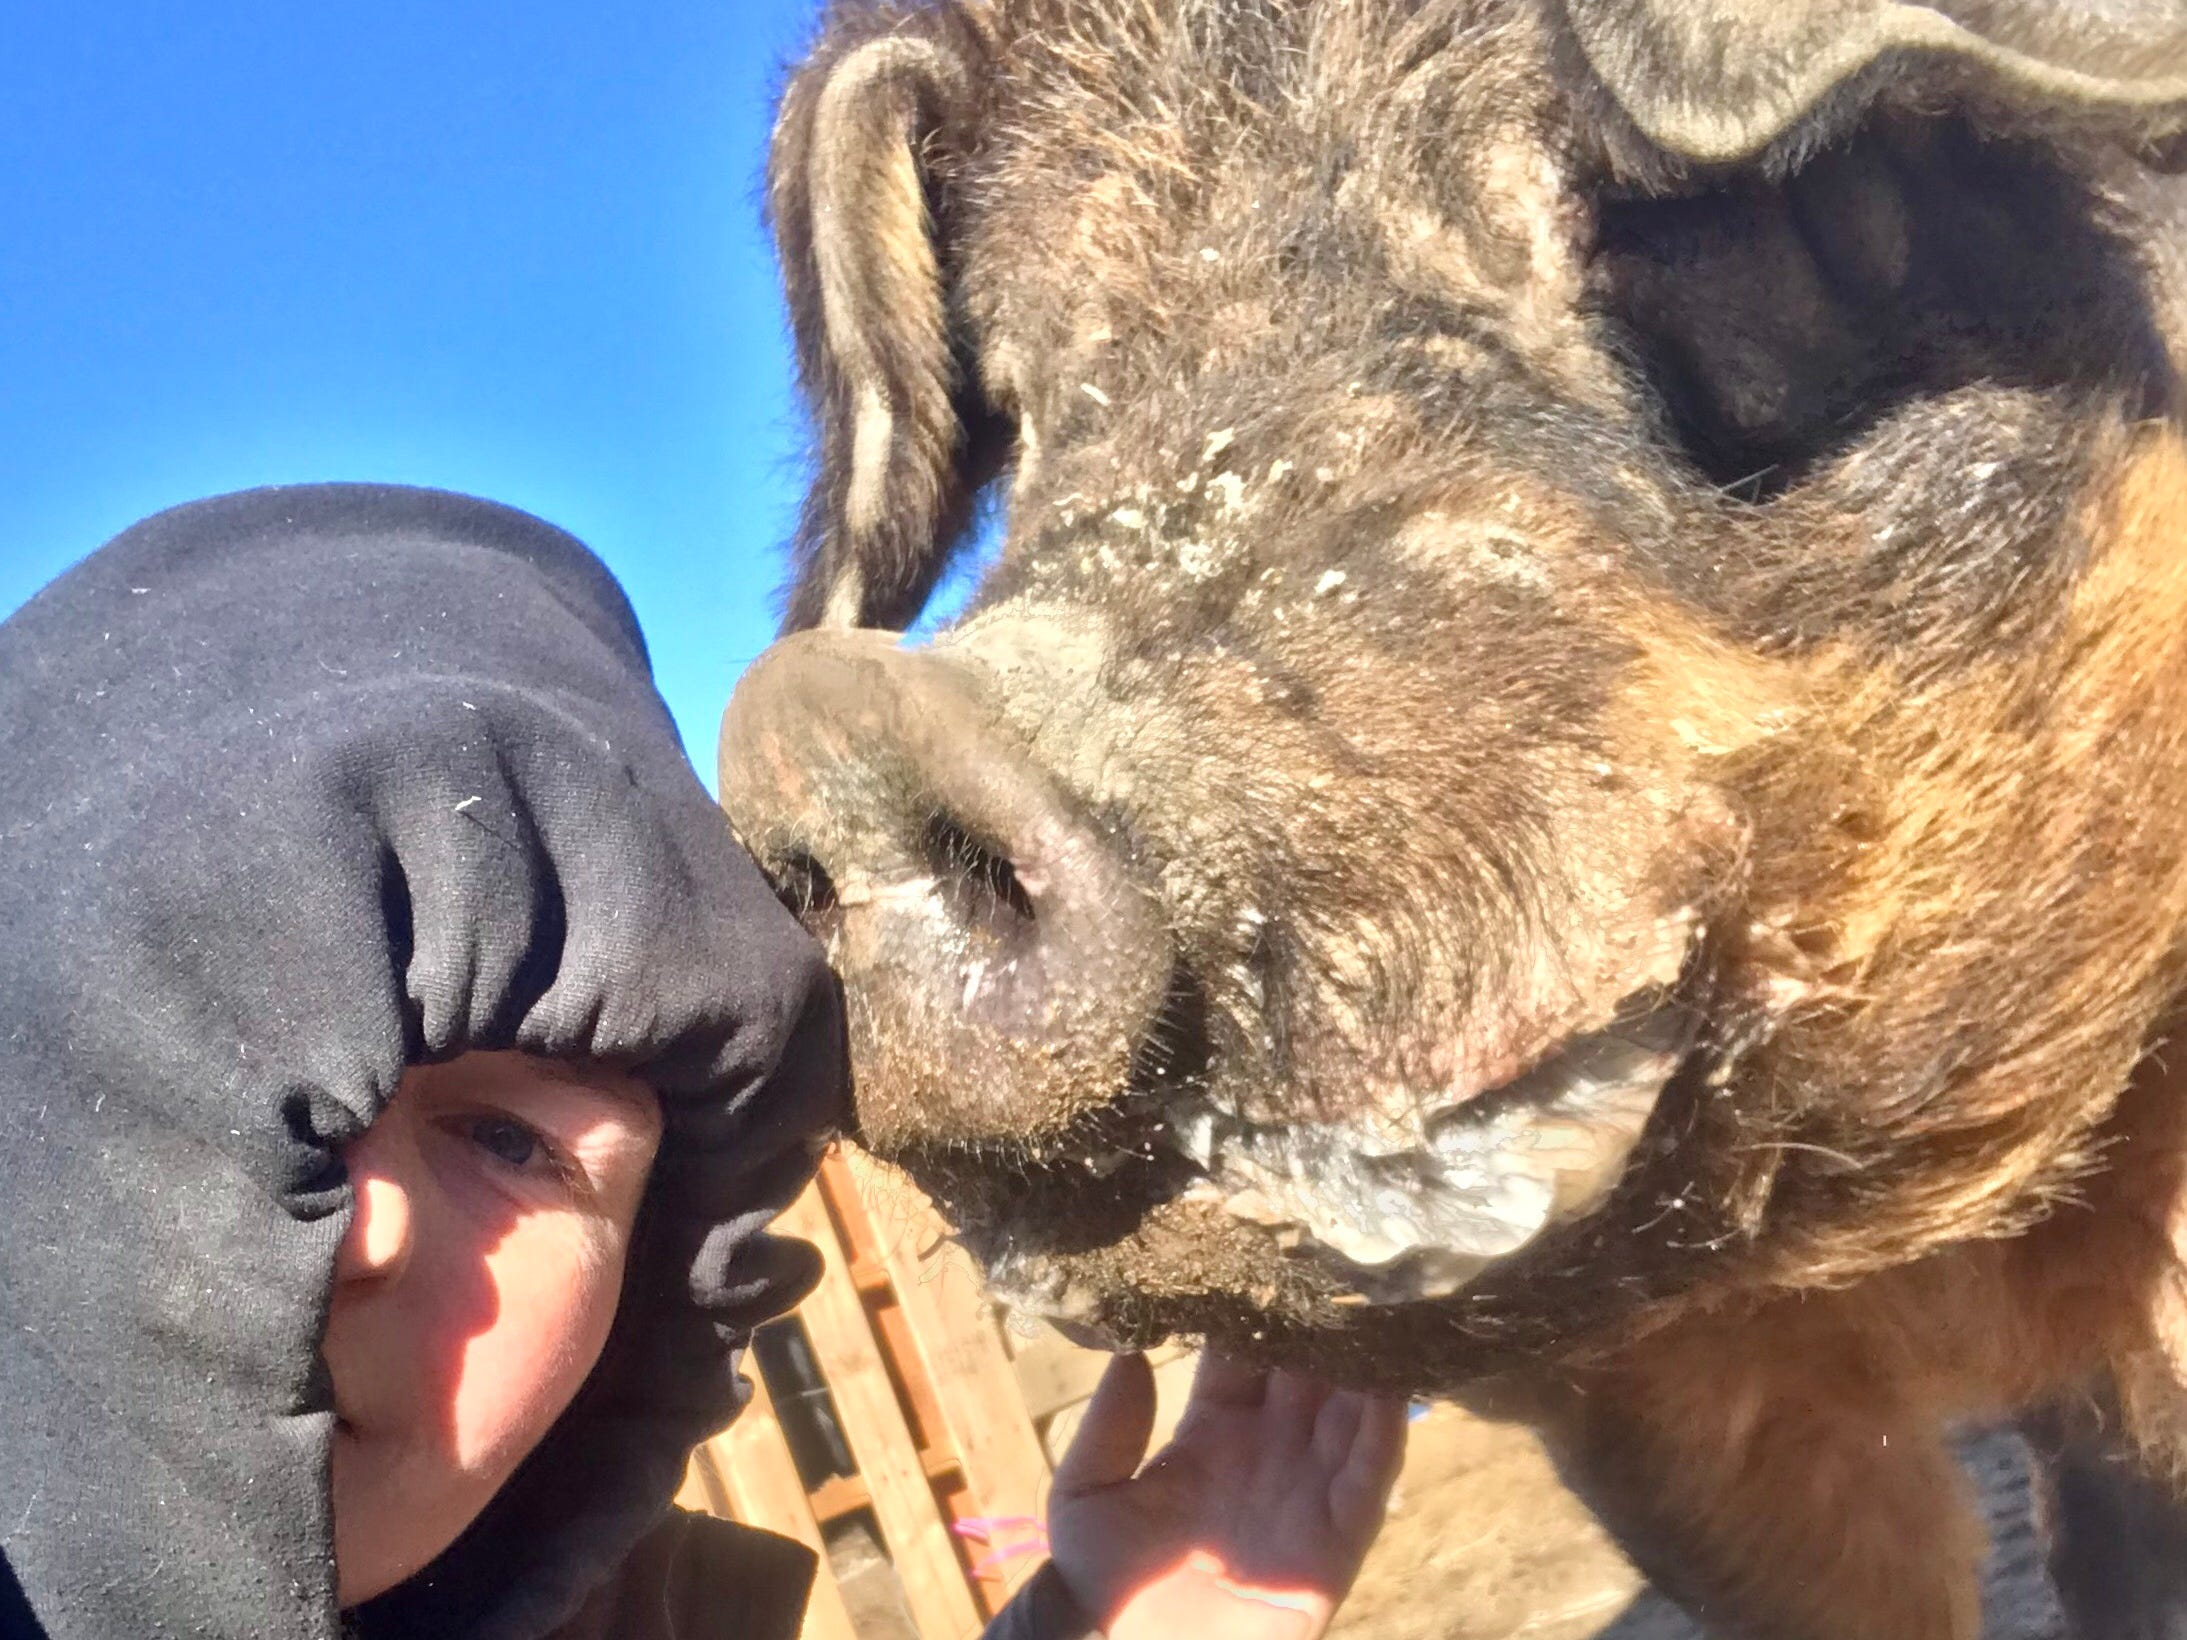 Krystal Tronboll takes a selfie with Halfton, a huge pig who popped up on a Ventura County bike path last month. Tronboll founded a livestock rescue operation in San Diego County where Halfton now lives.